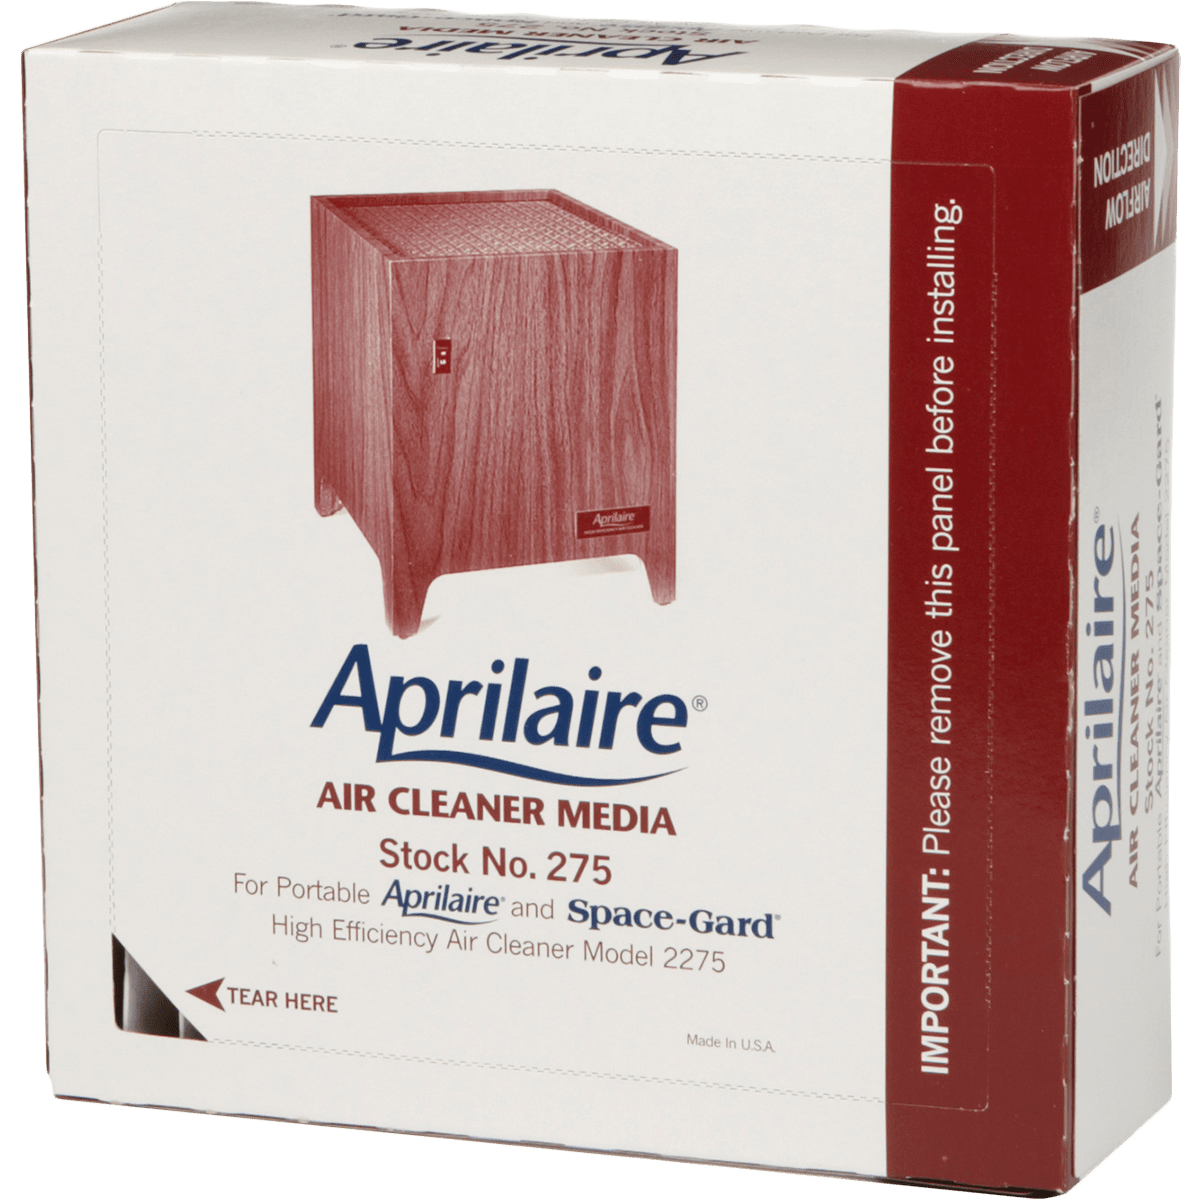 Aprilaire Replacement Filter for 2275 Portable Air Cleaner (0275) ap5681